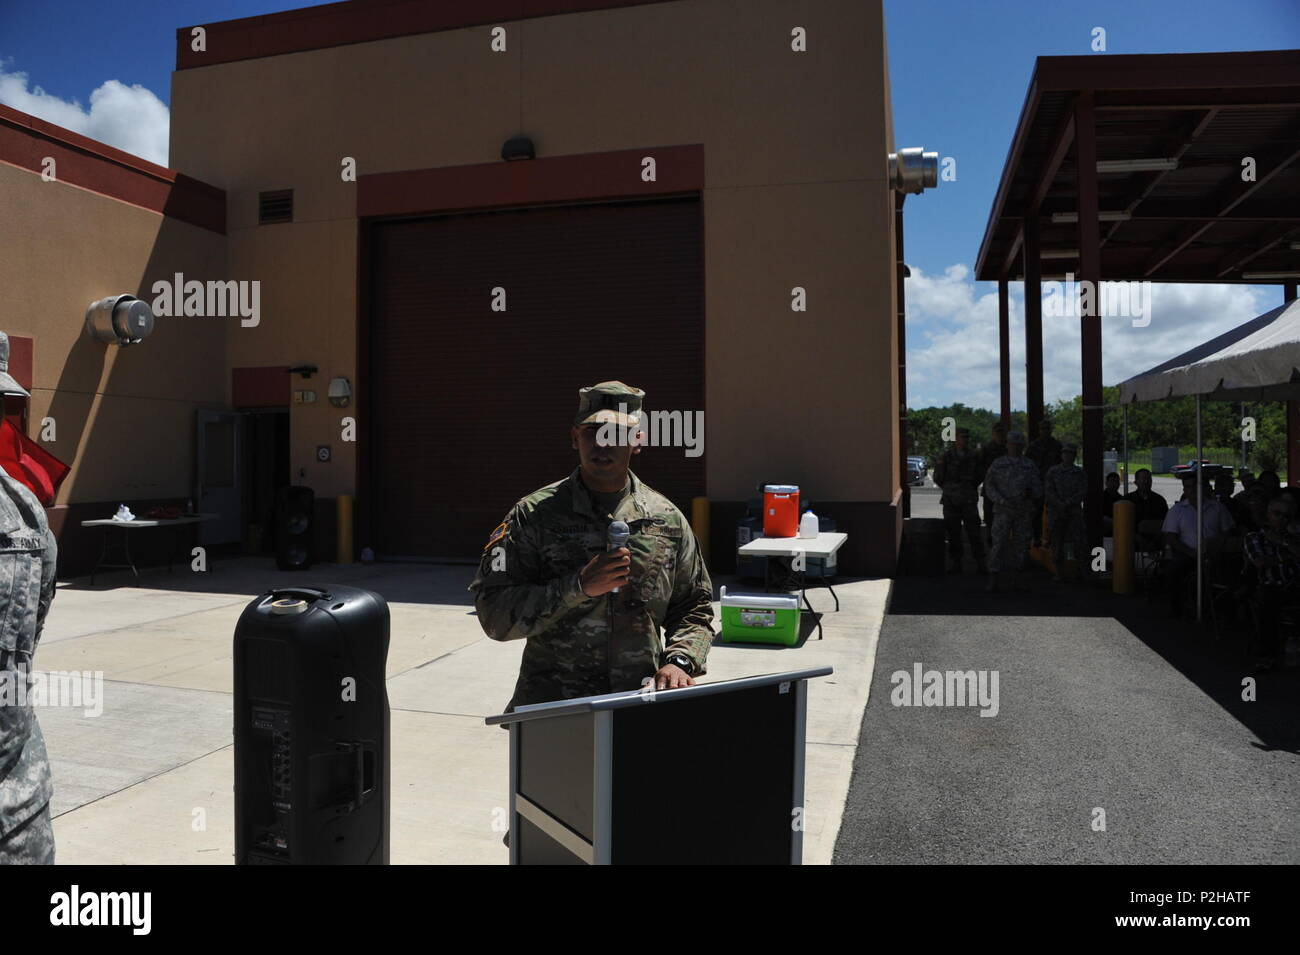 Capt. Armando Pantoja, commander of the 246th Quartermaster Co. (Mortuary Affairs), addresses his Soldiers, friends and family during a farewell ceremony held at the U.S. Army Reserve Center in Mayaguez, PR. - Stock Image